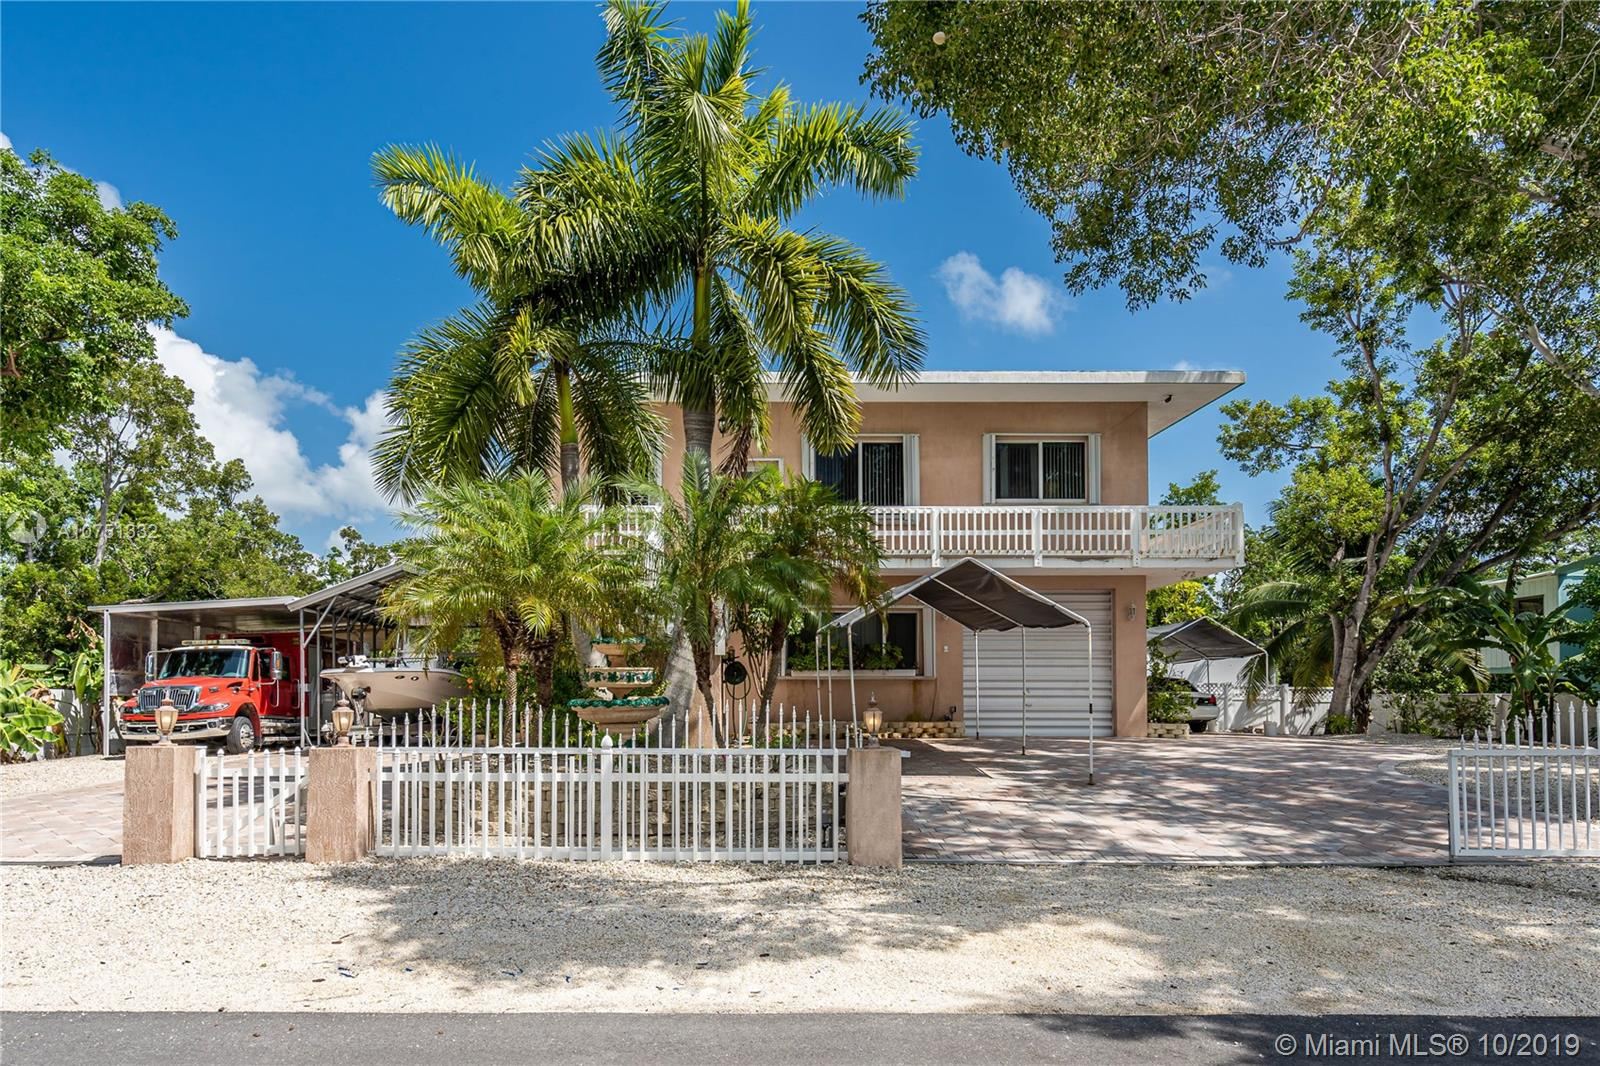 929 Lobster Ln, Other City - Keys/Islands/Caribb, FL 33037 - Other City - Keys/Islands/Caribb, FL real estate listing